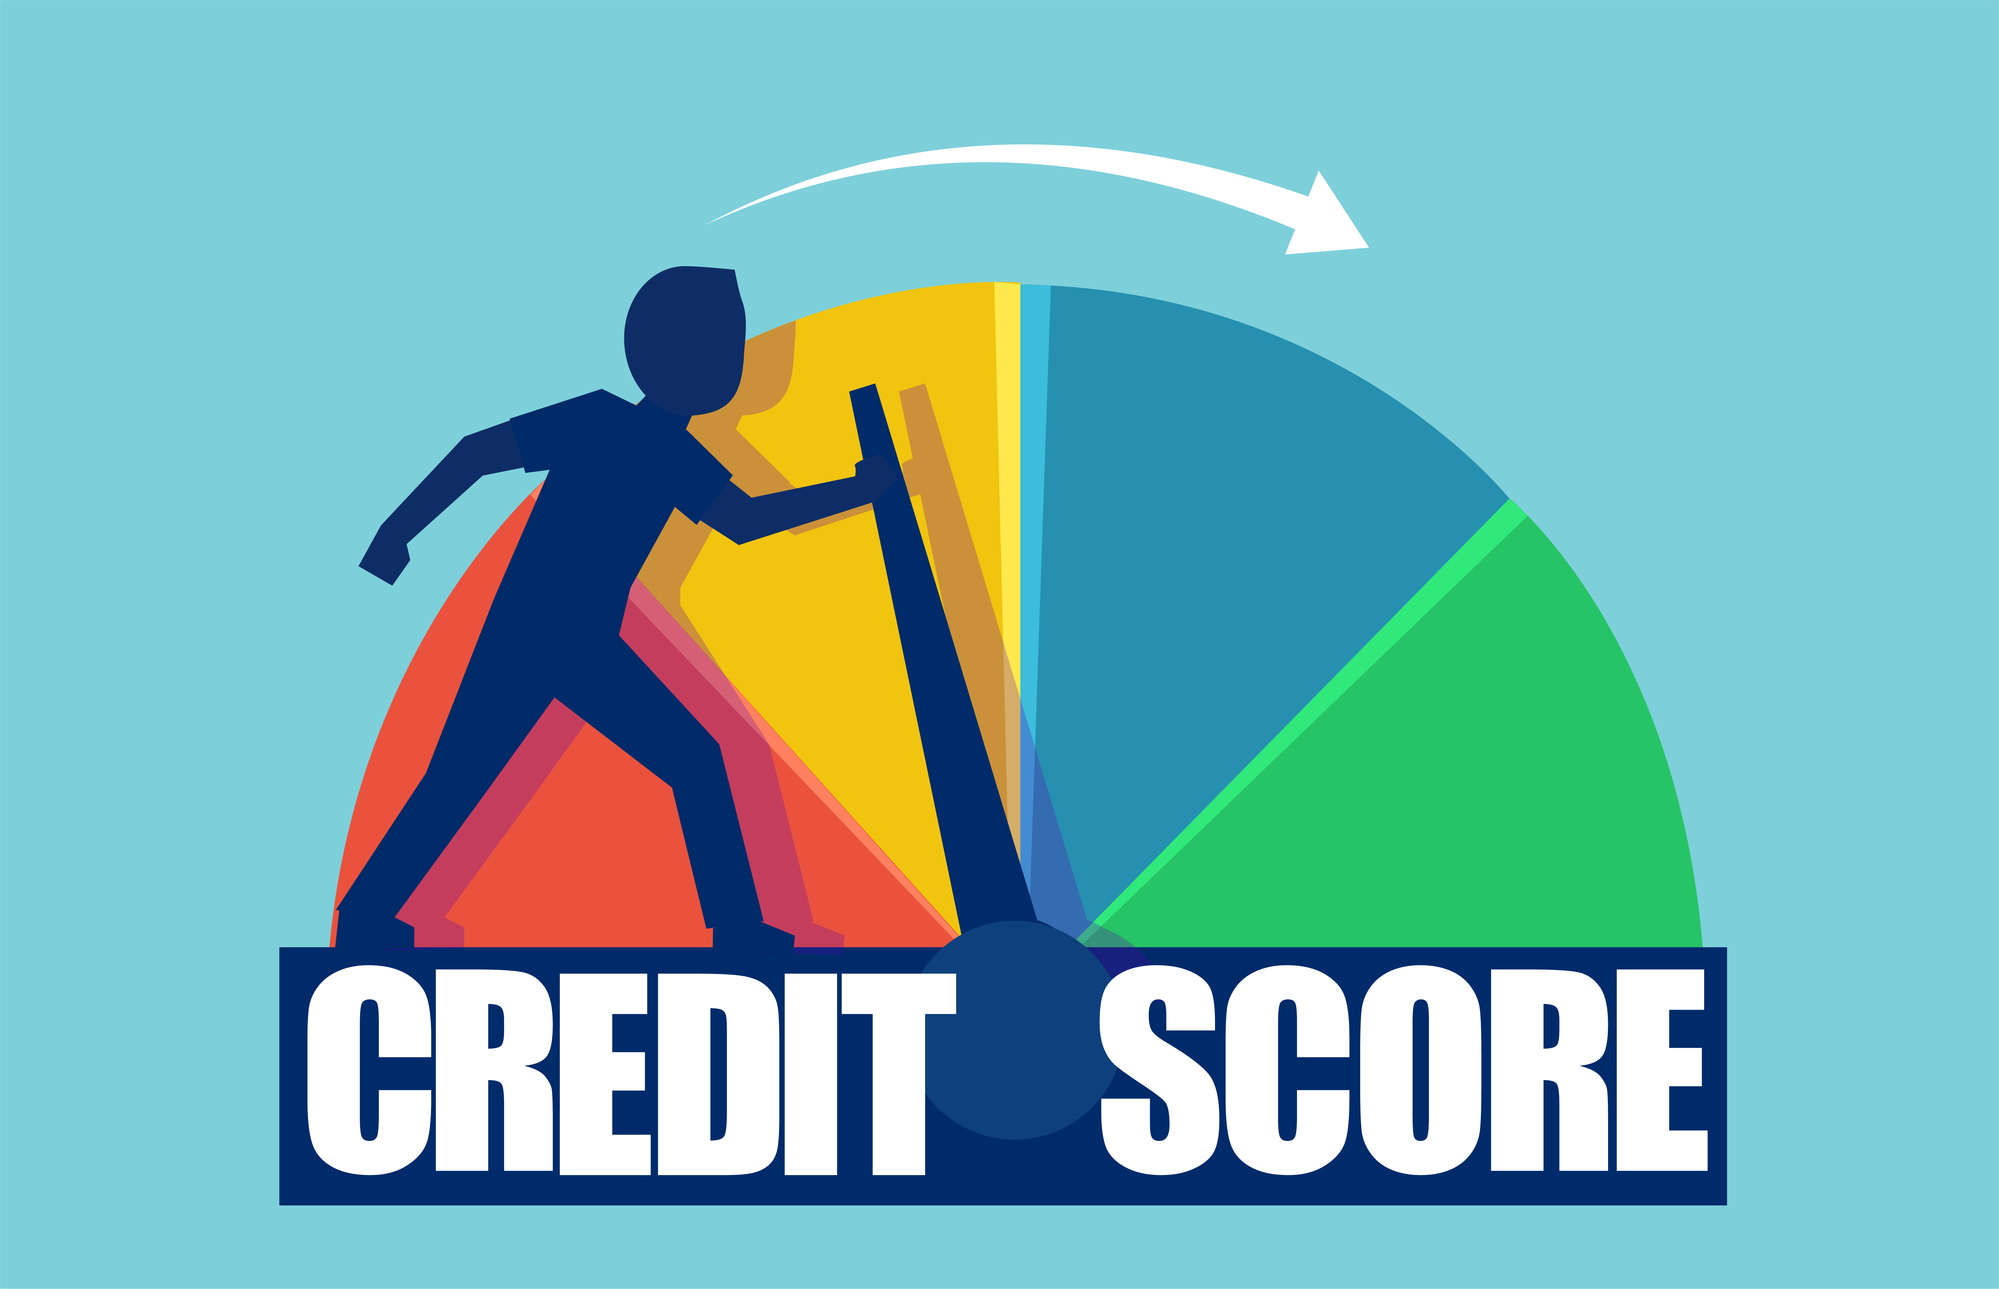 6 reasons building your credit score is one of the smartest financial moves you can make